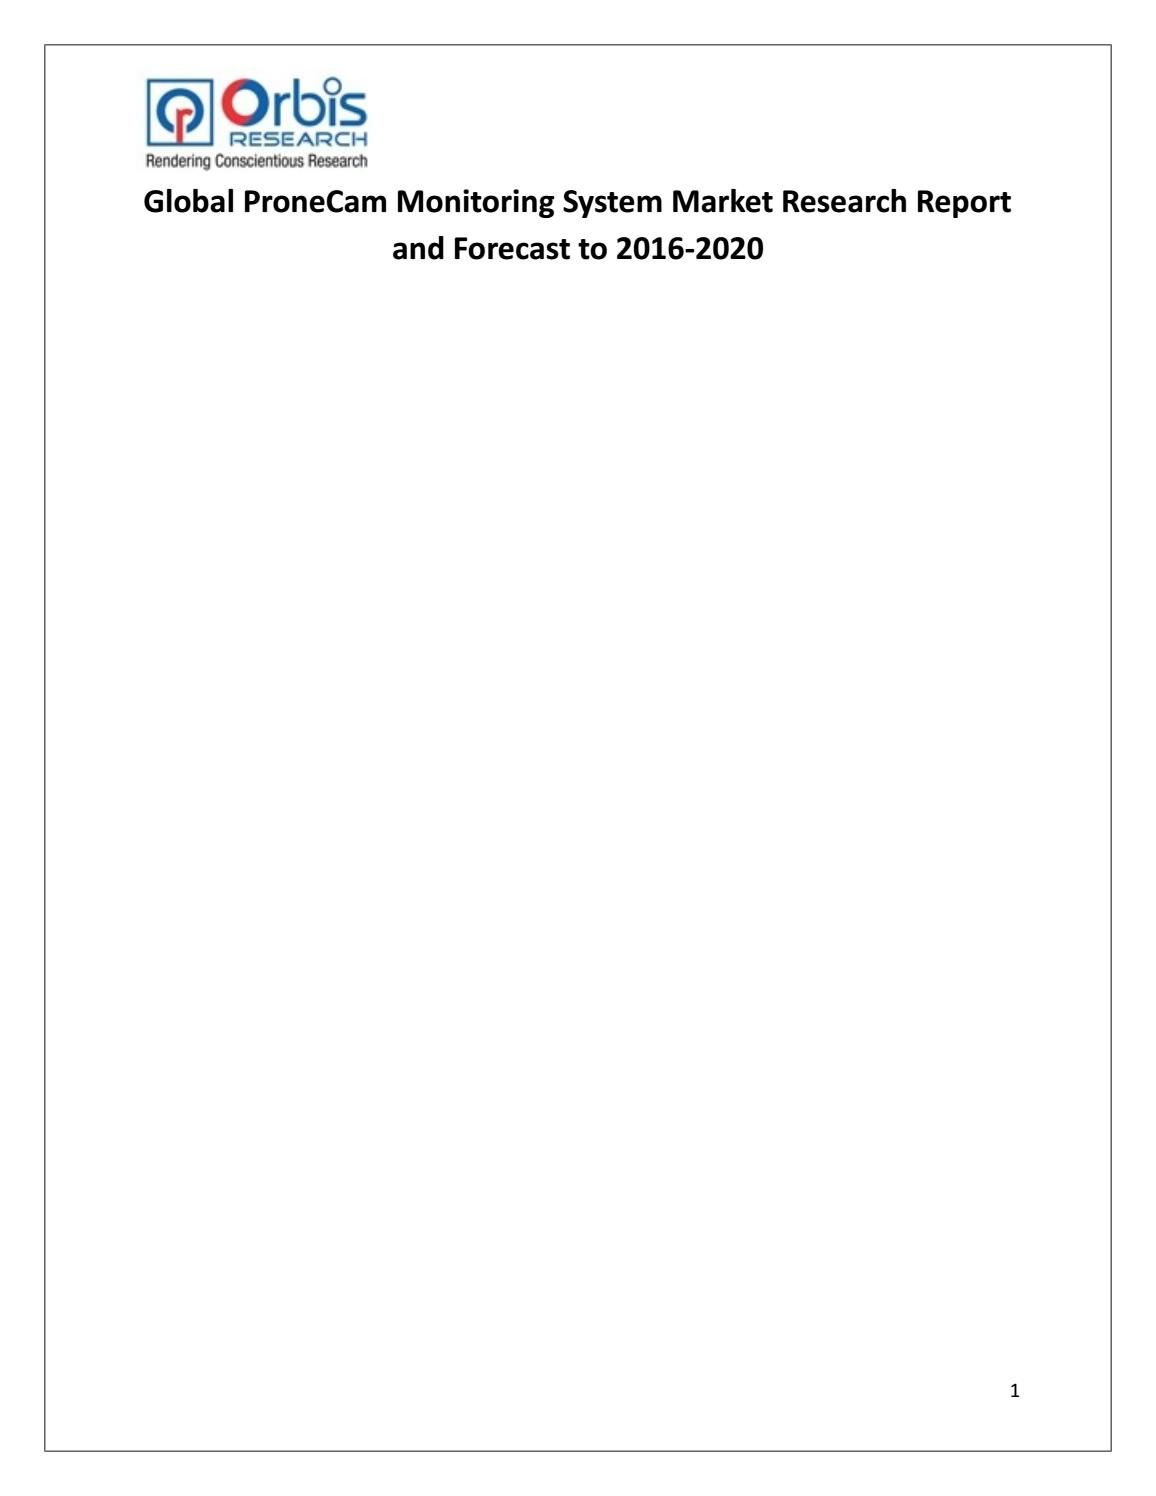 Global Pronecam Monitoring System Industry Analysis  Forecast